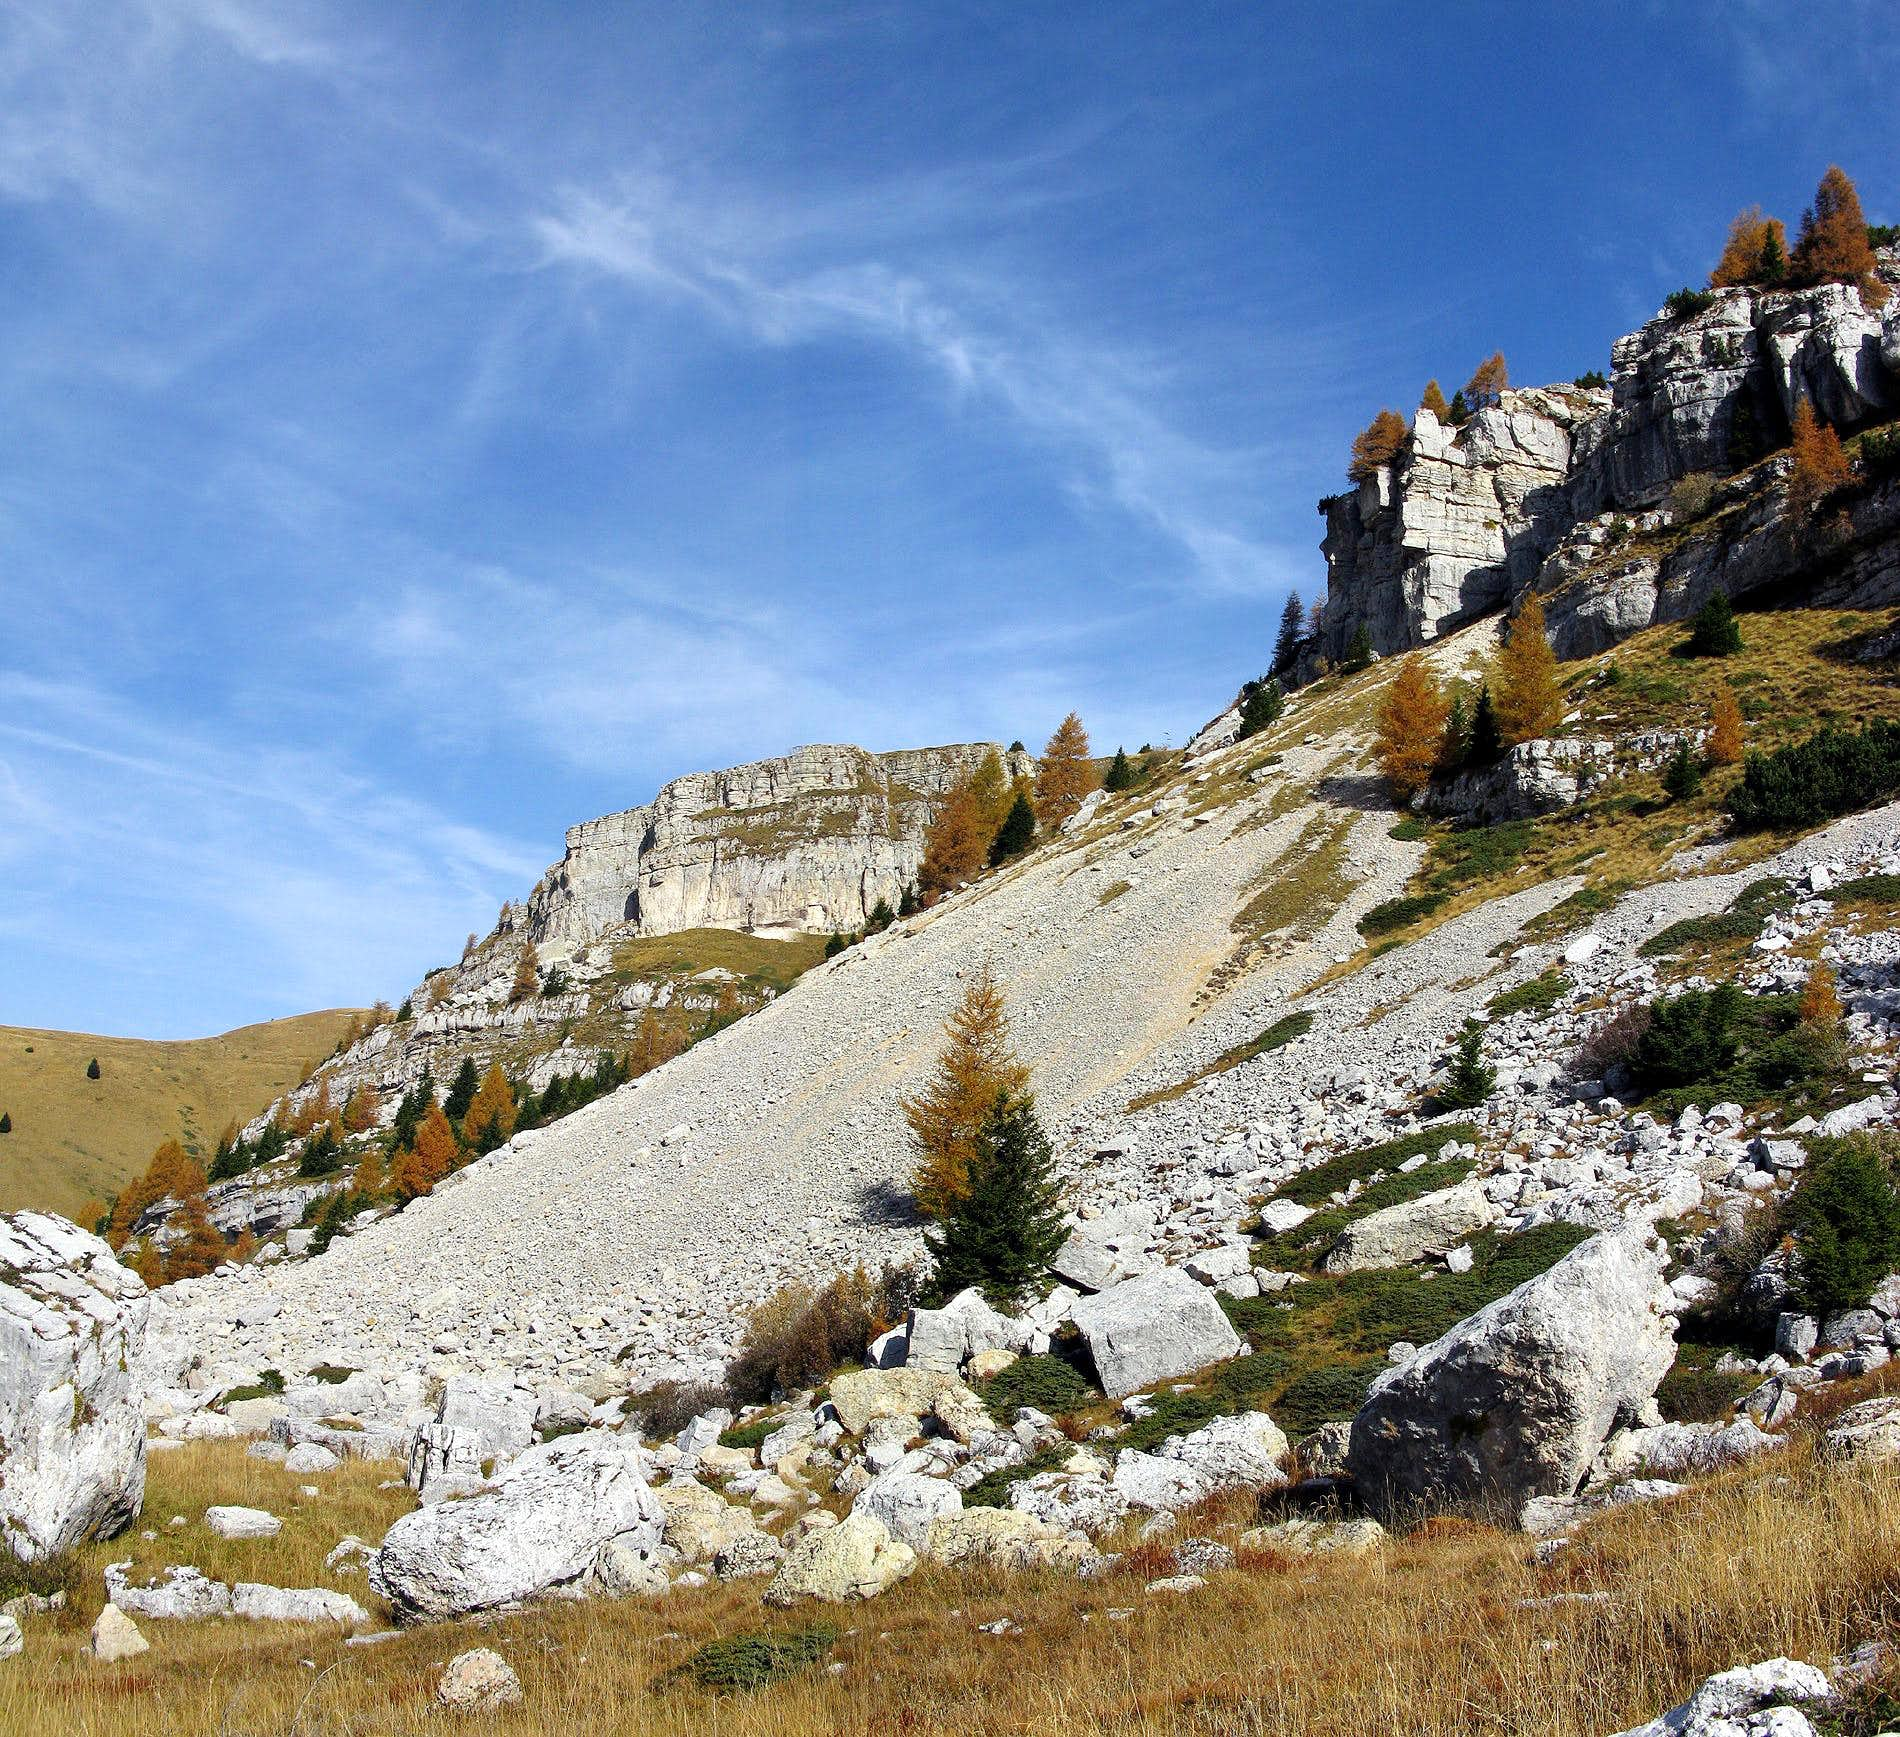 Autumn in Pasubio